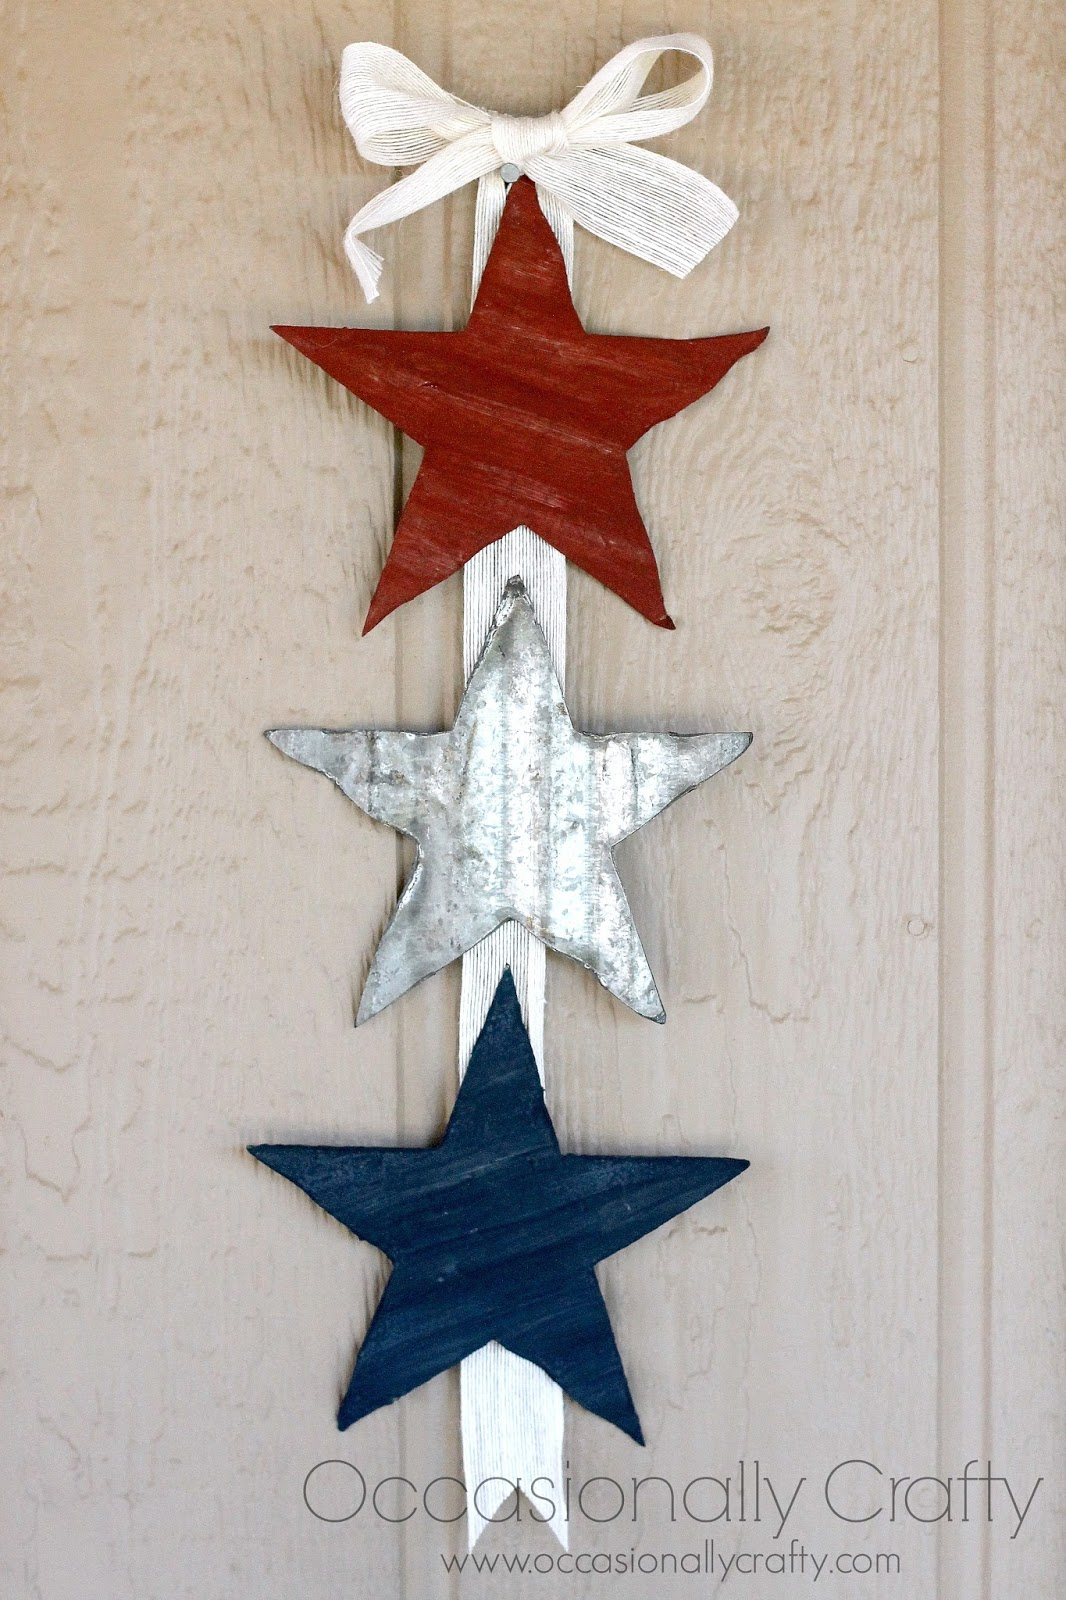 I Painted Two Of My Stars Brick Red And Navy Blue Because Kind Like The Primitive Americana Look Those Colors Brought That Out